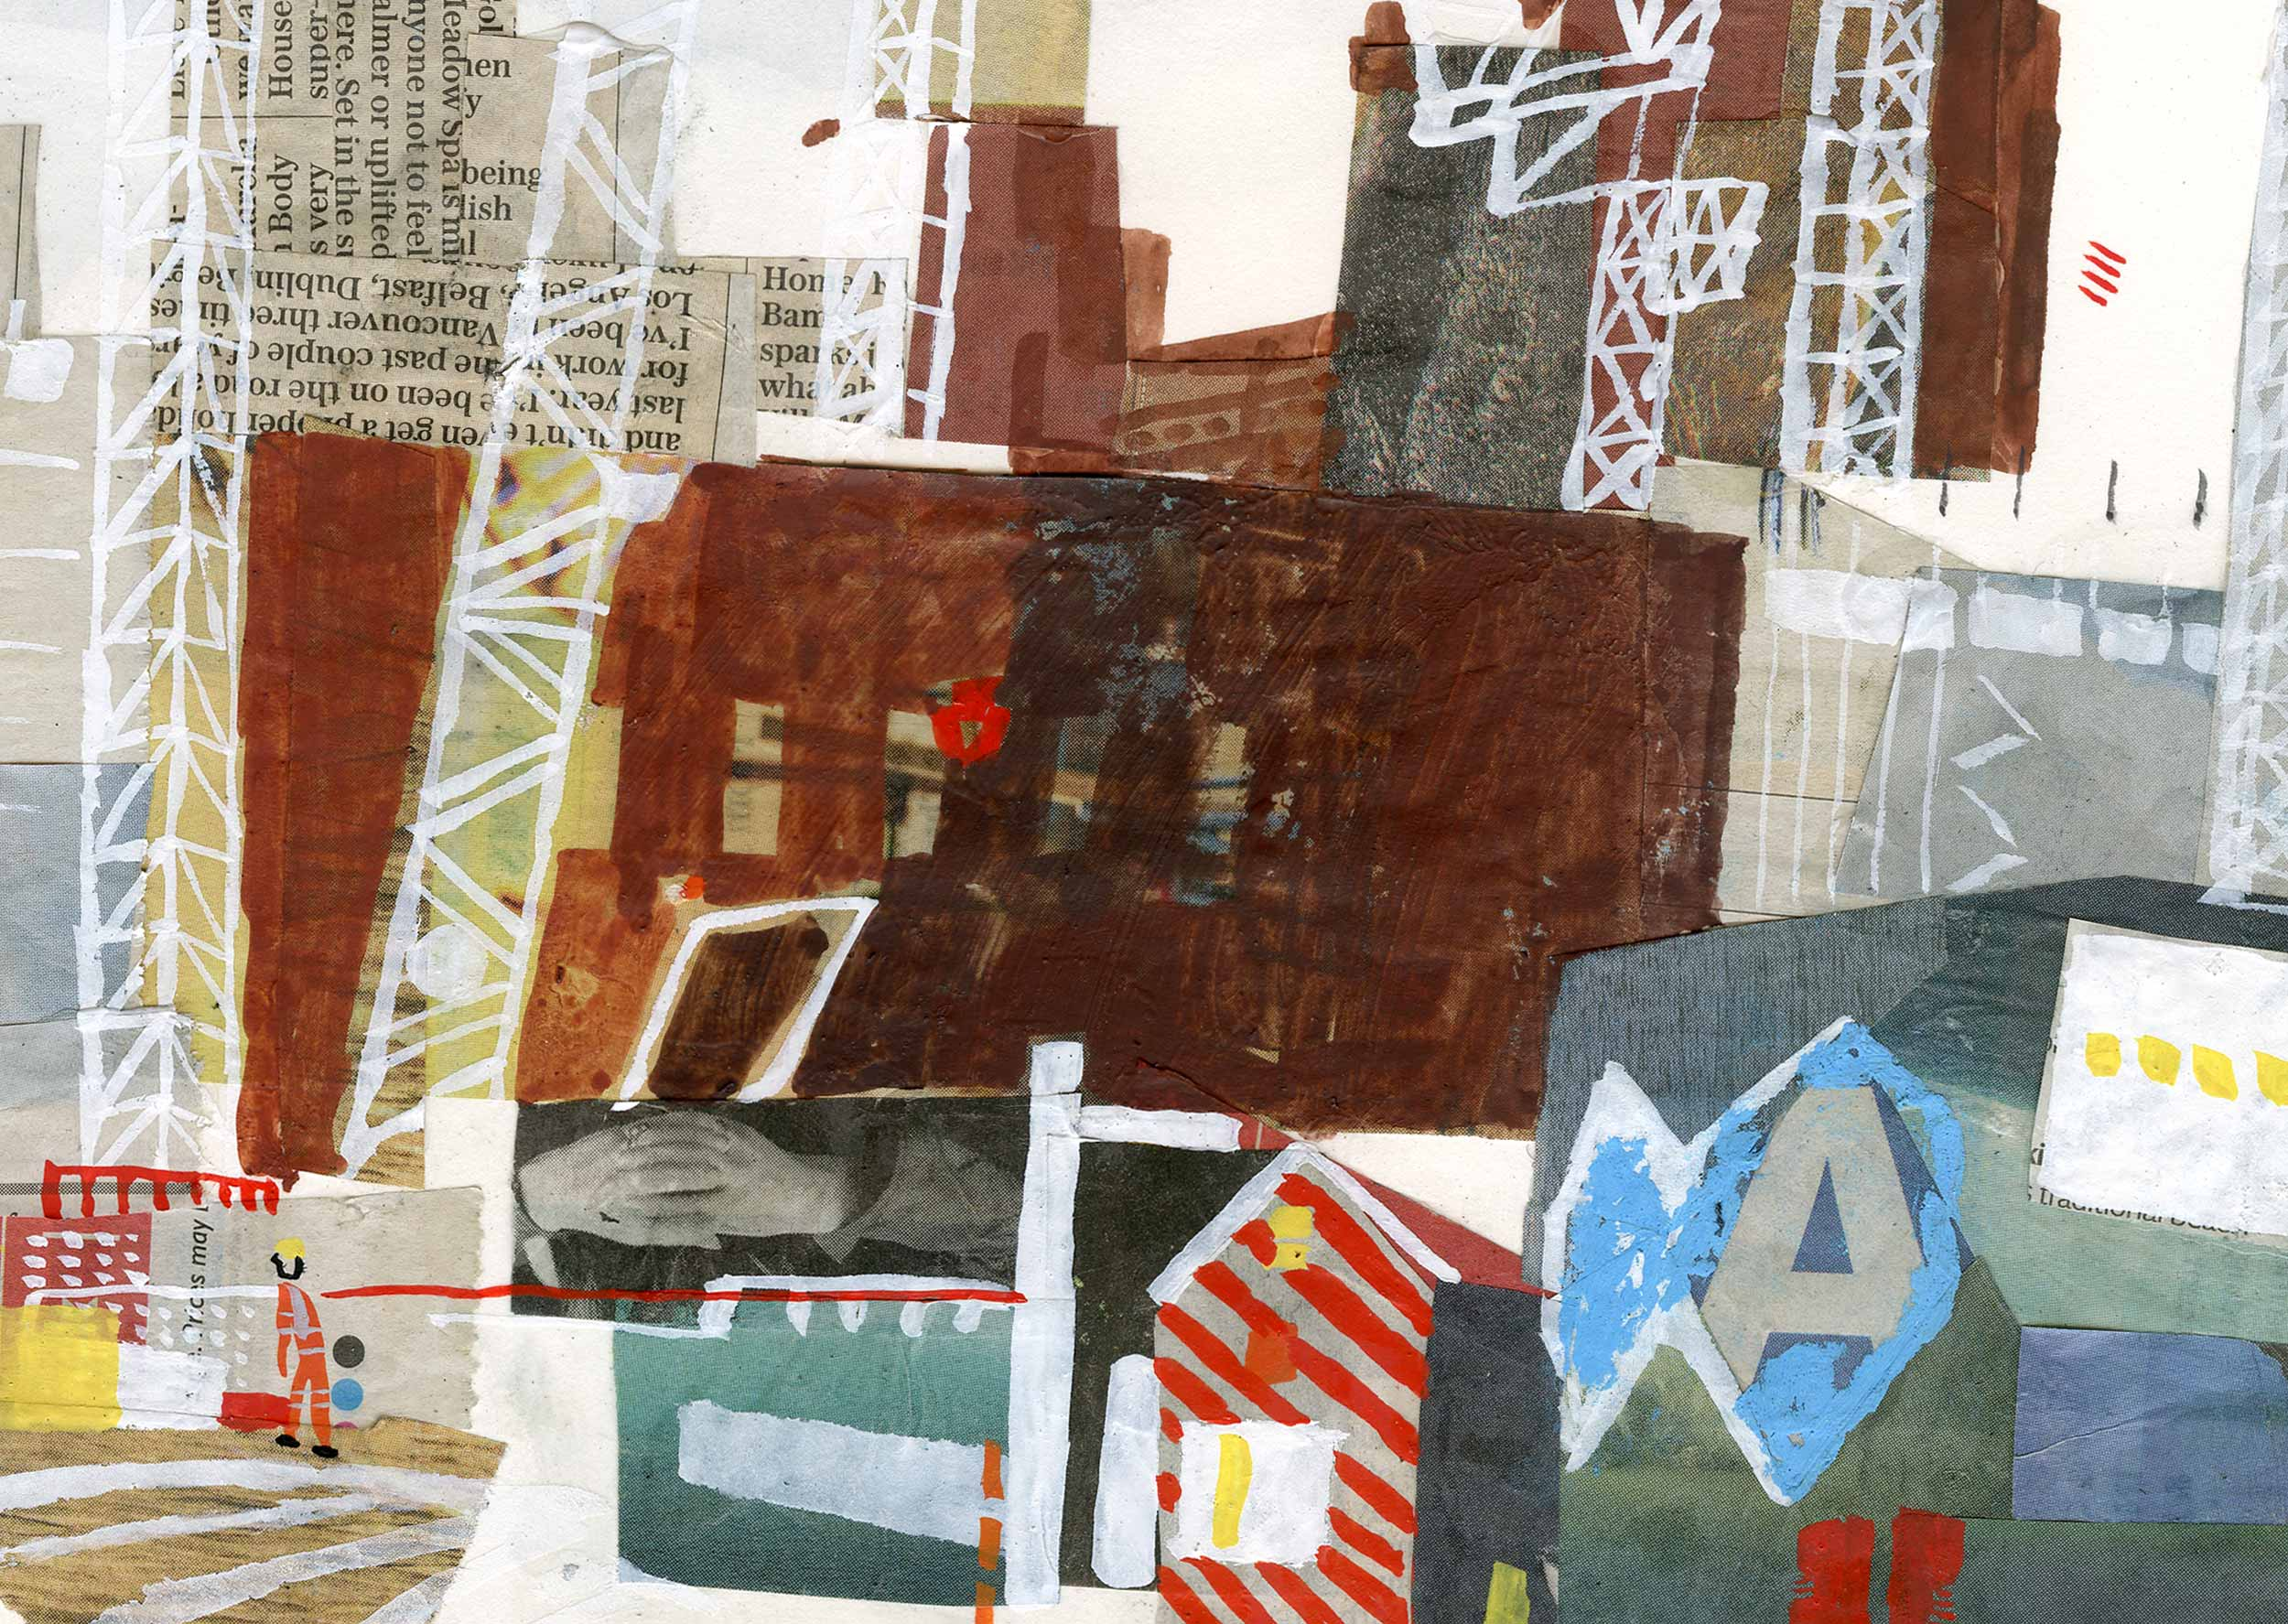 Battersea Power Station by James Oses, image 3